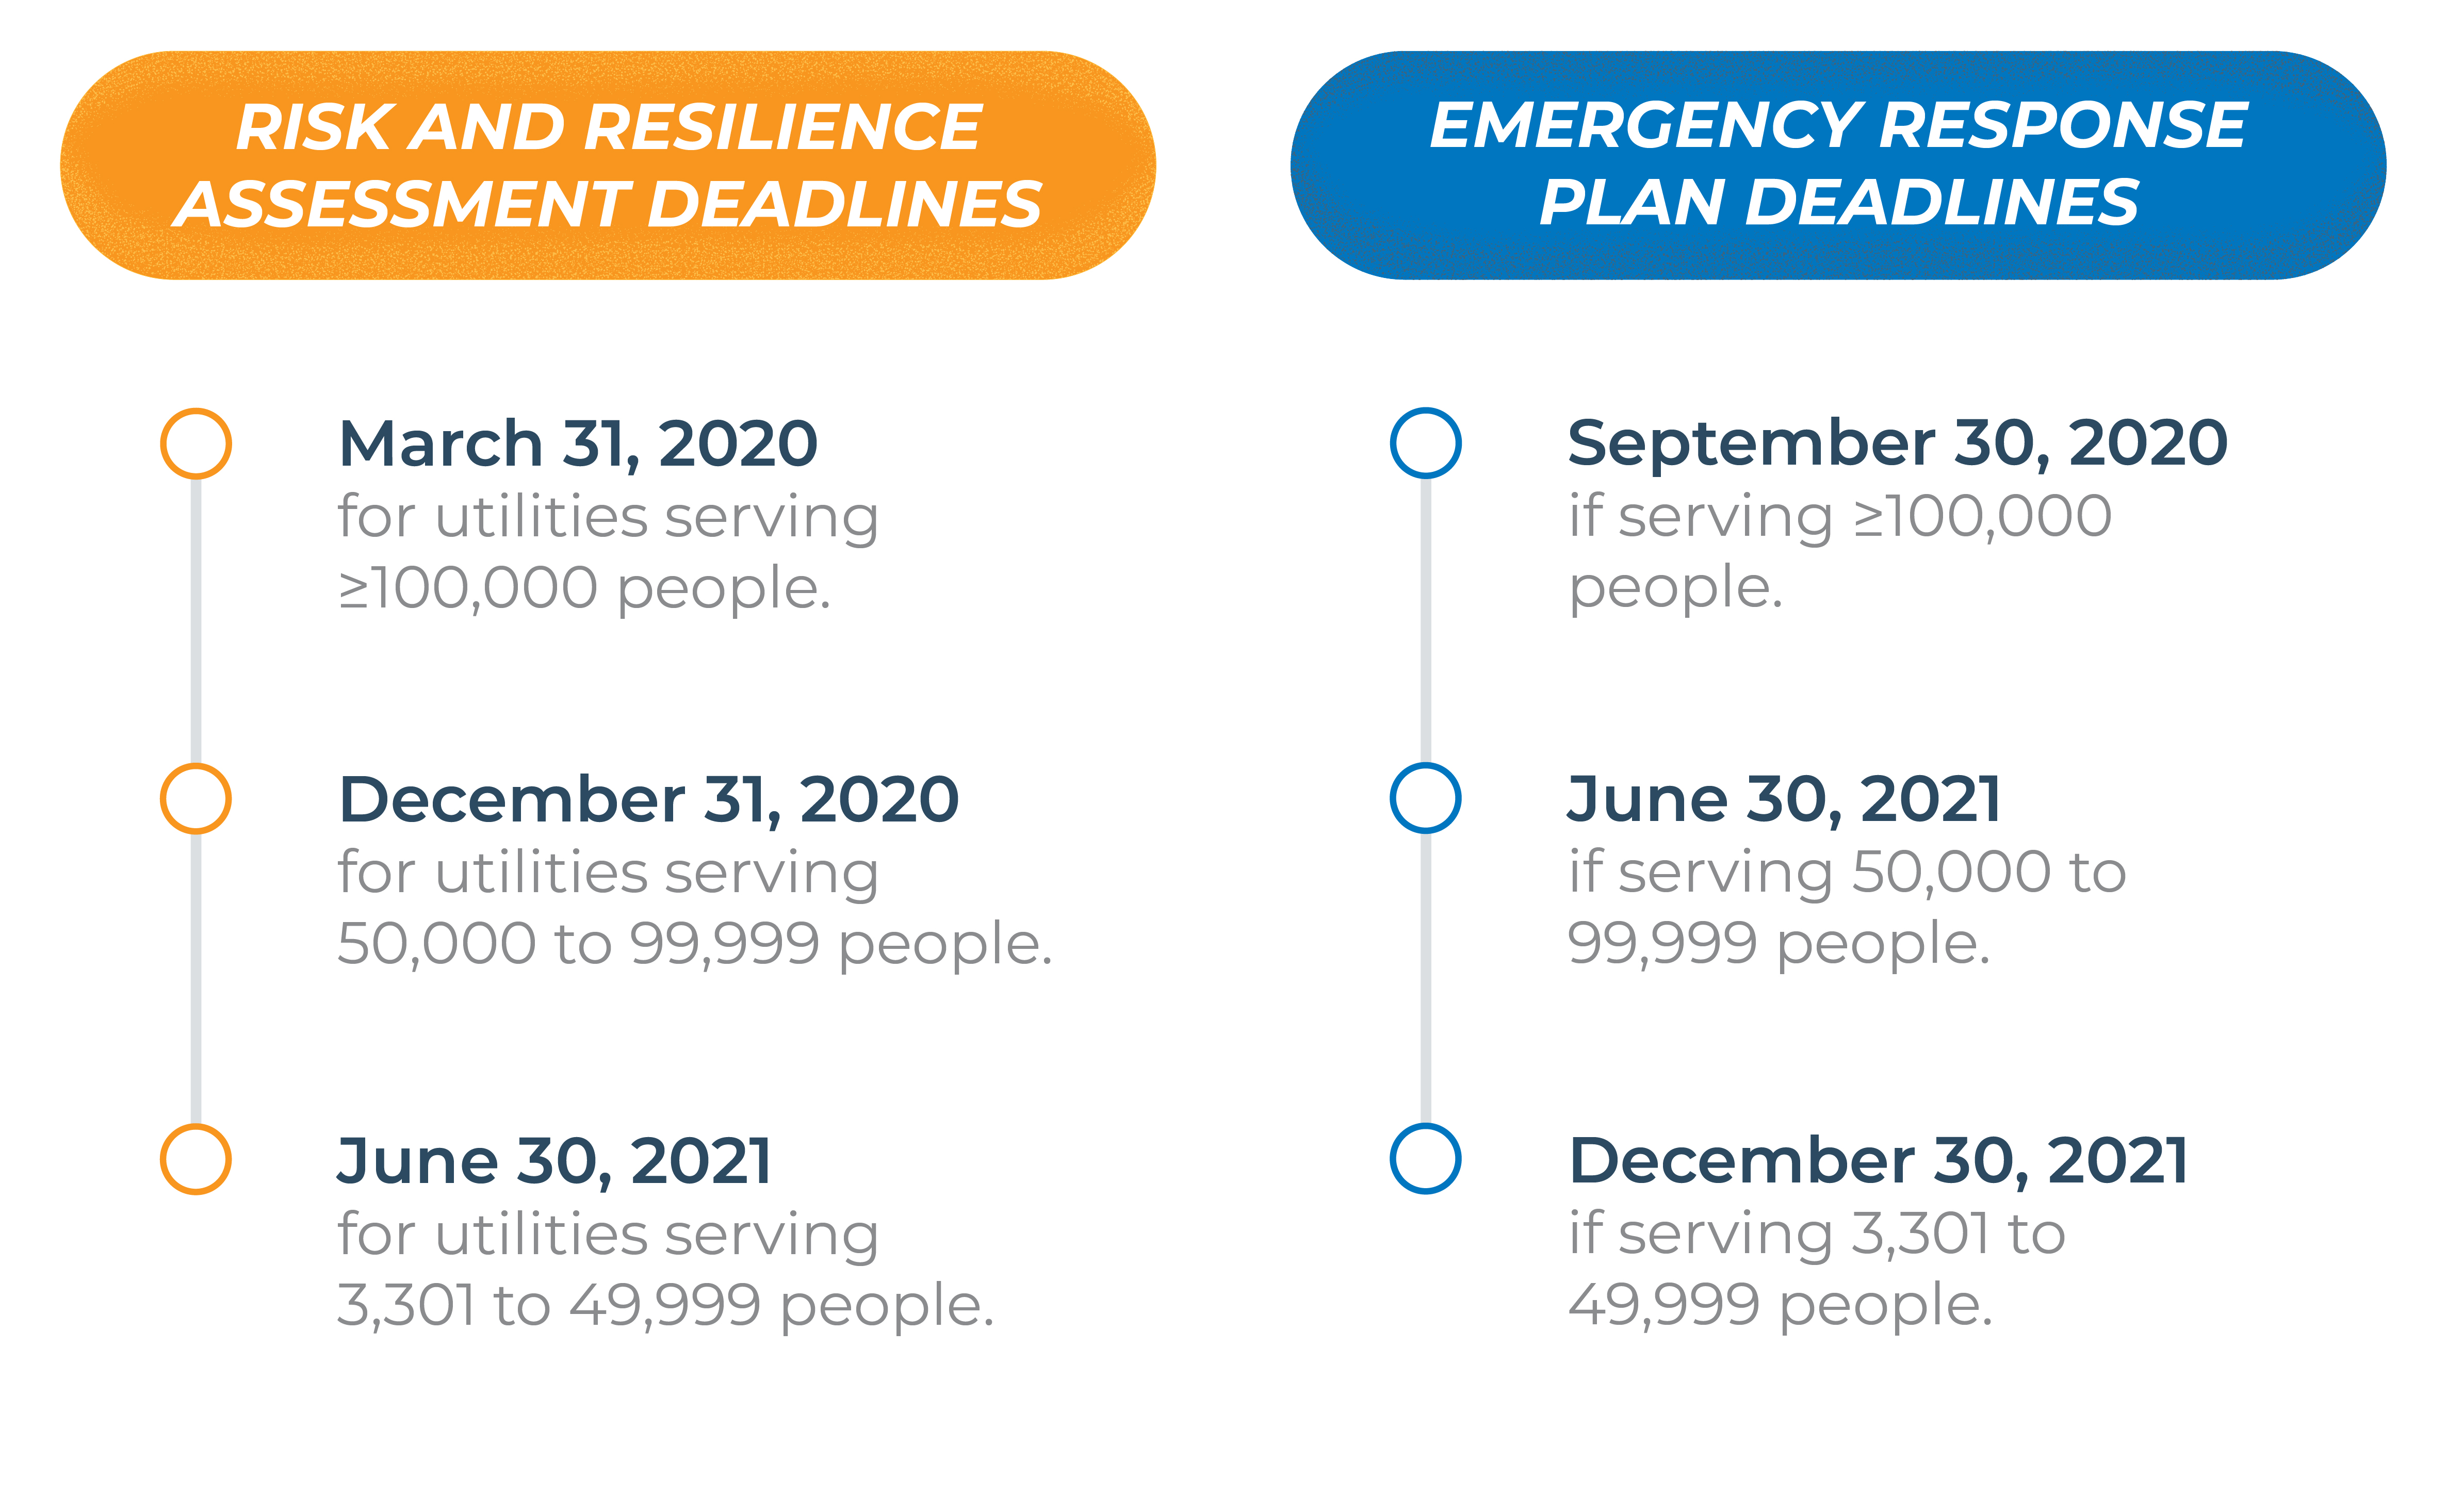 Risk and Resilience Deadlines